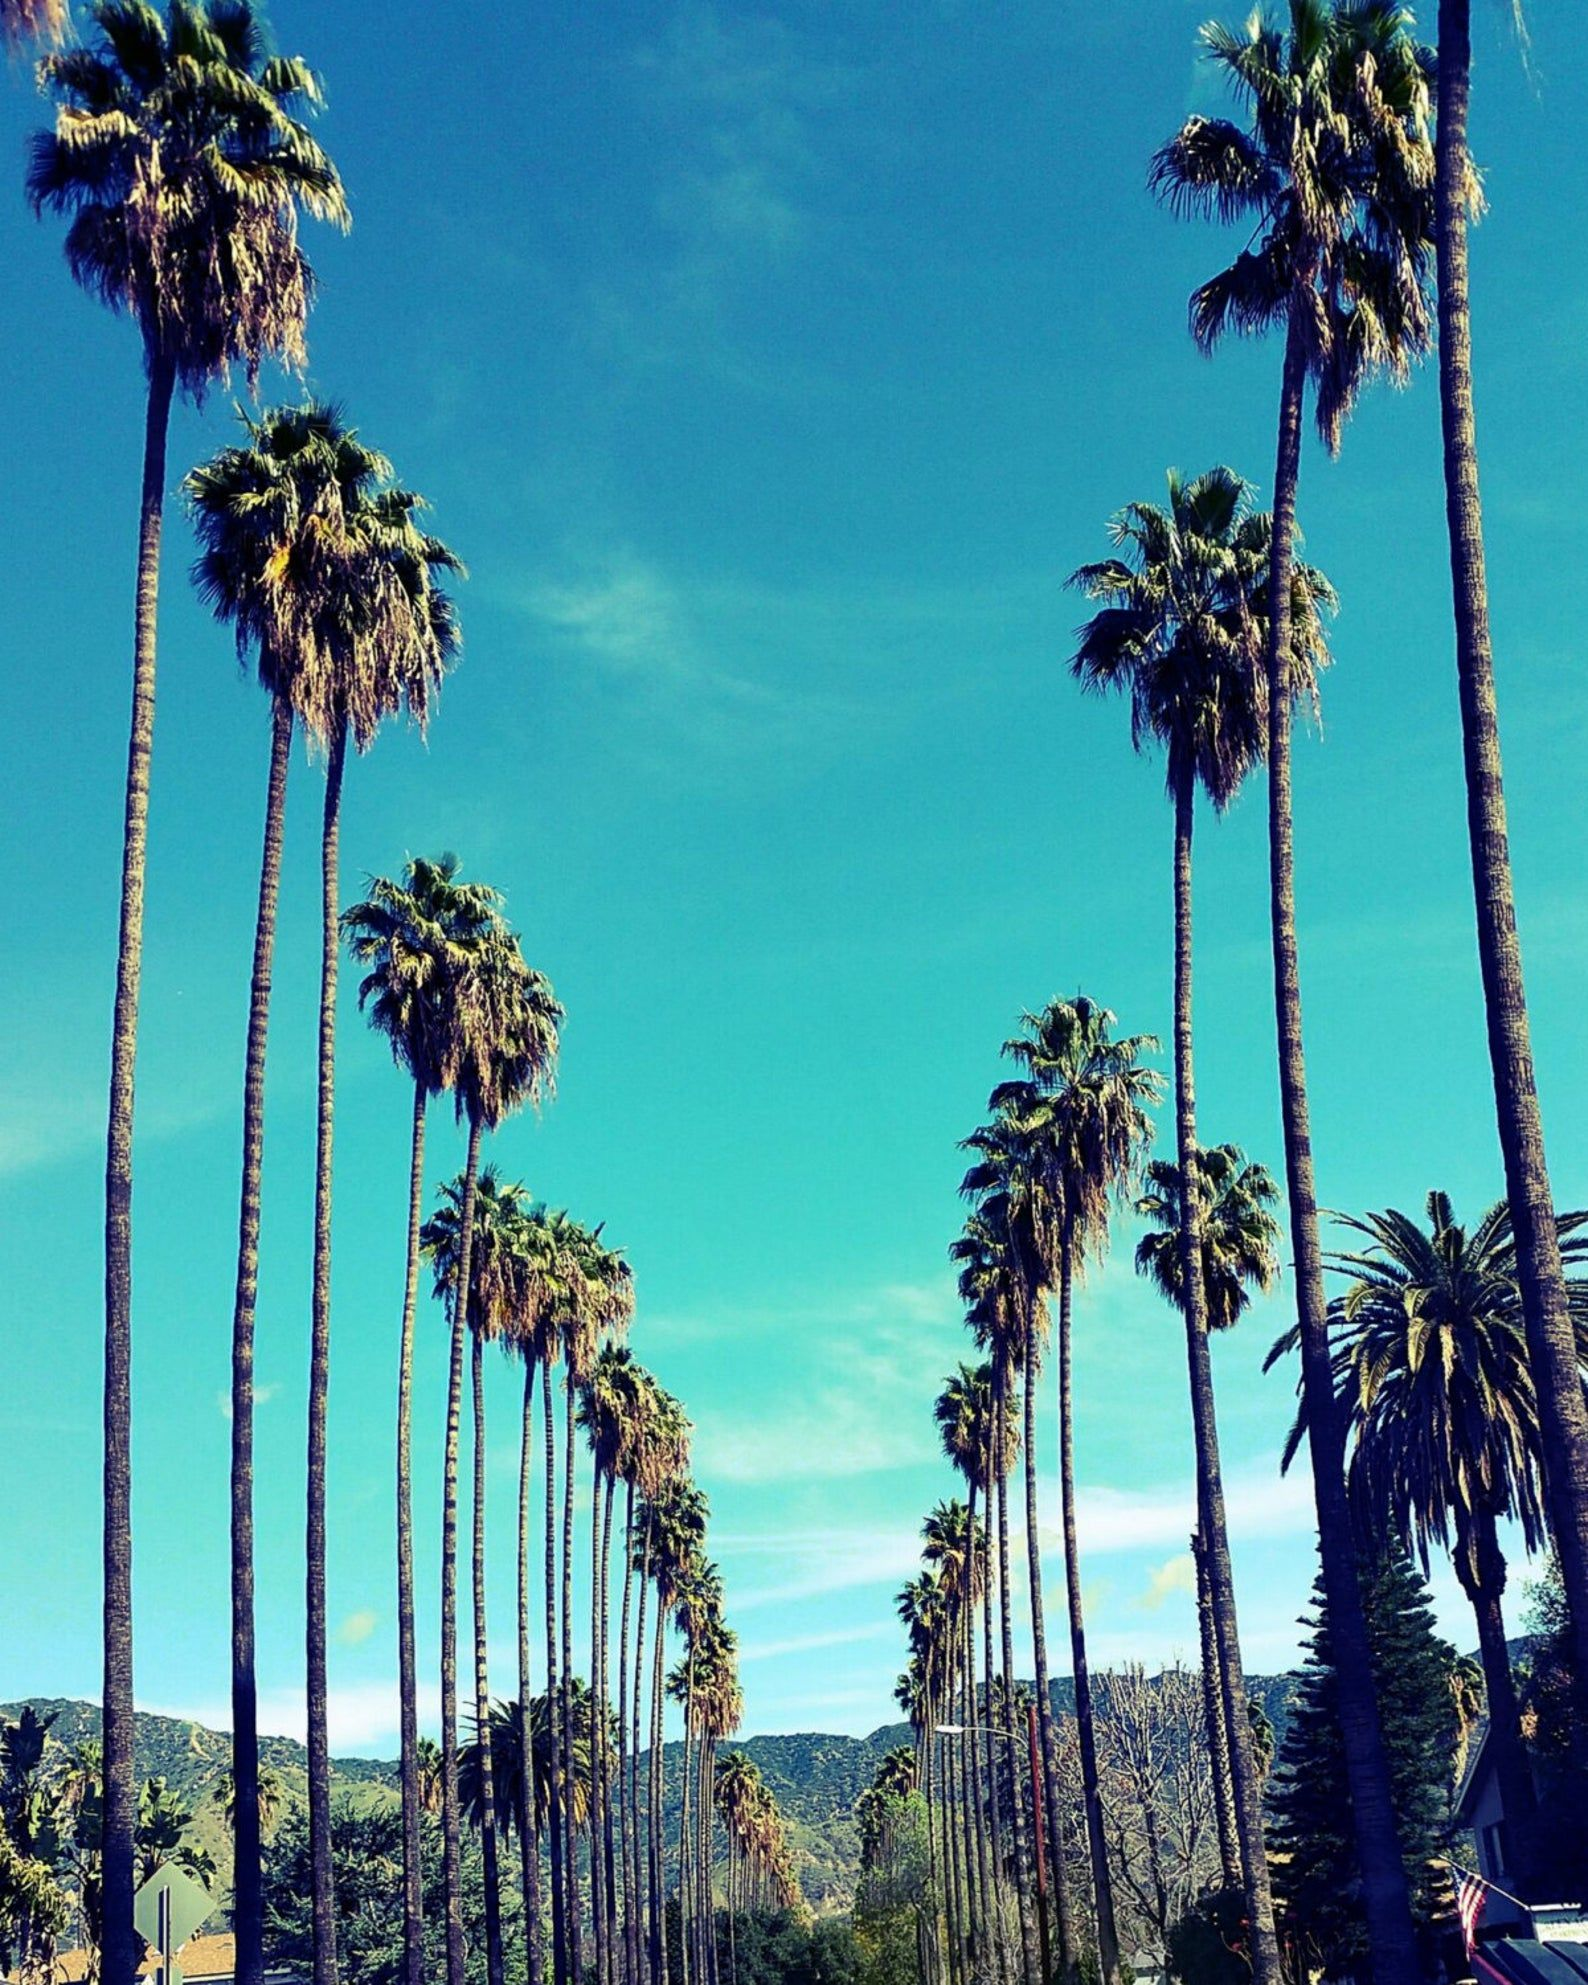 Palm Trees In Los Angeles California Palm Tree Lined Street Etsy In 2020 California Palm Trees Los Angeles Photography Los Angeles Palm Trees